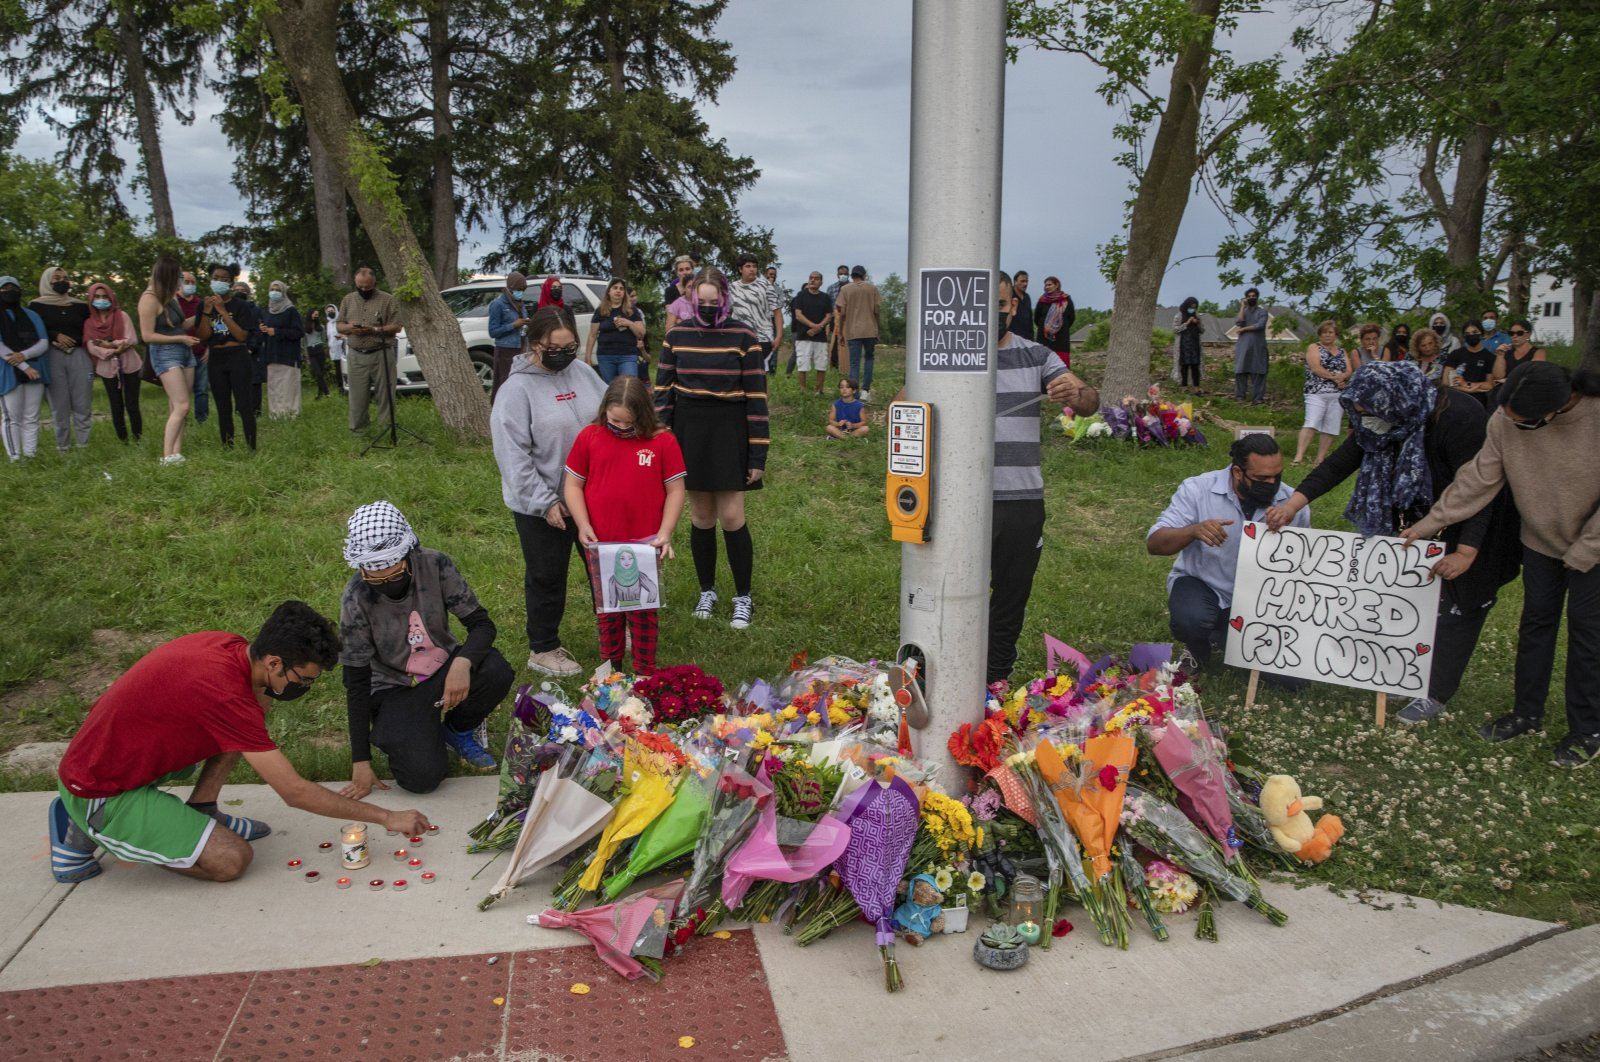 People attend a memorial at the location where a family of five was hit by a driver, in London, Ontario, Canada, Monday, June 7, 2021. (AP Photo)